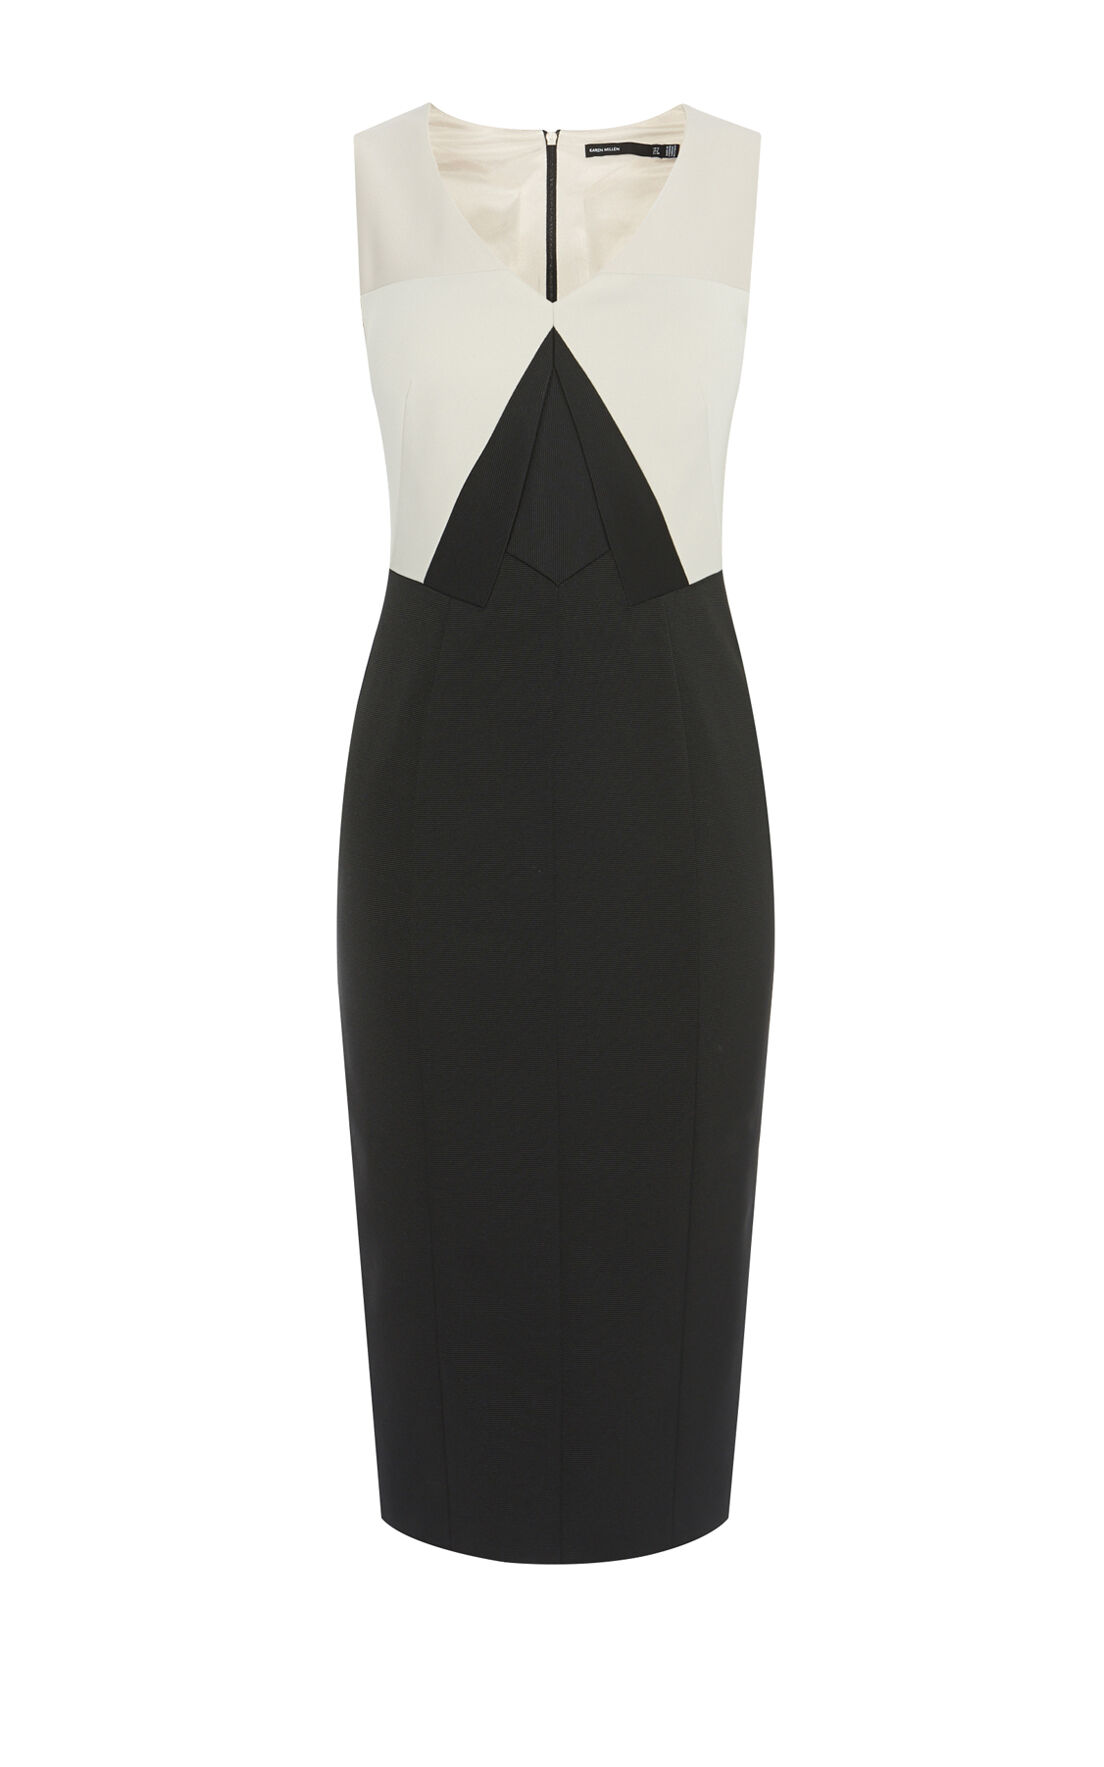 Karen Millen, COLOURBLOCK PENCIL DRESS Black & Ivory 0